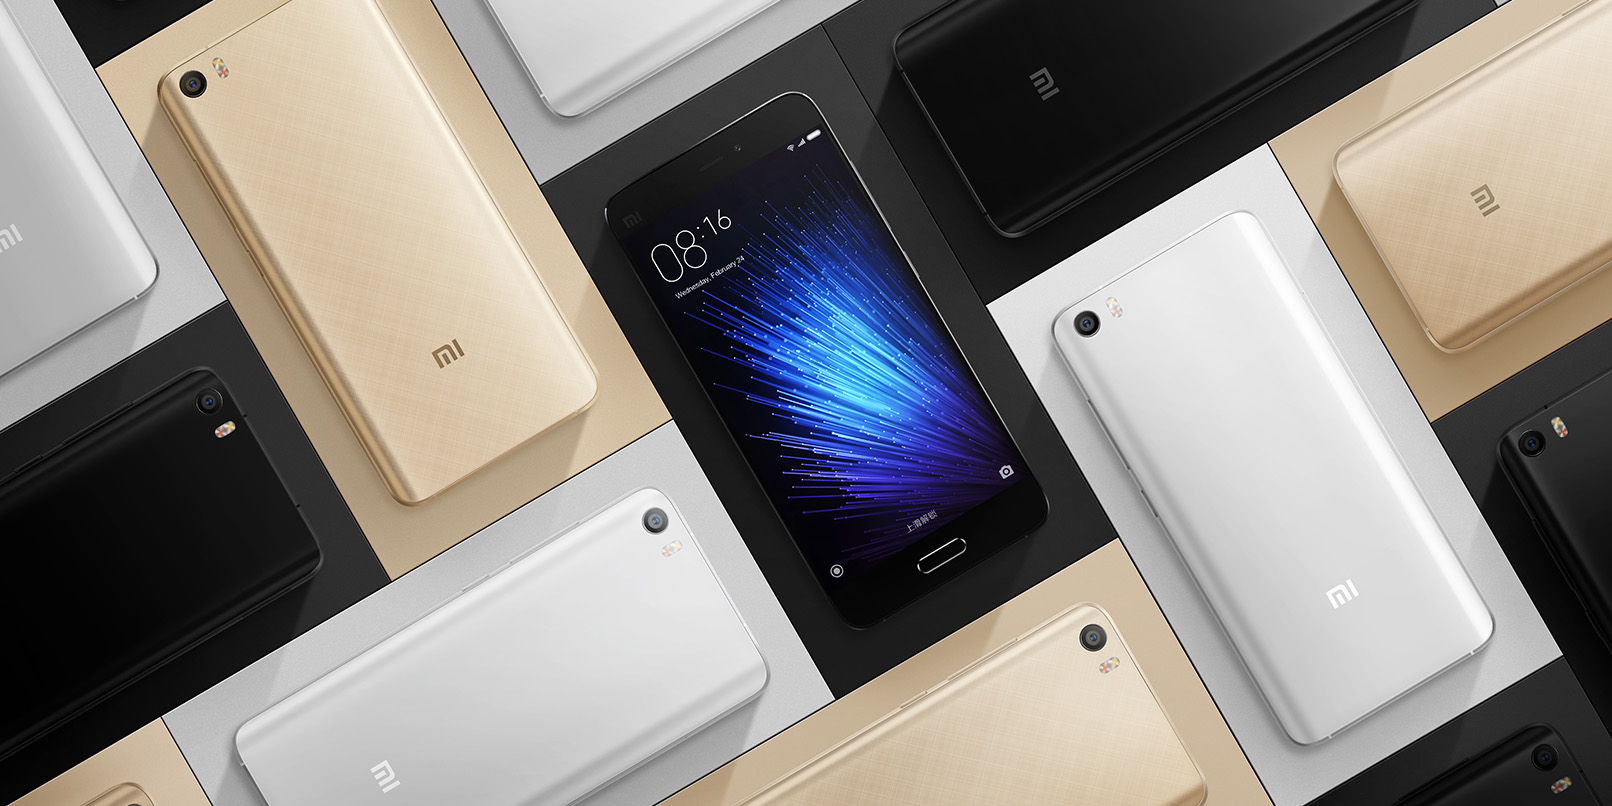 The battle of the flagship phones at MWC 2016